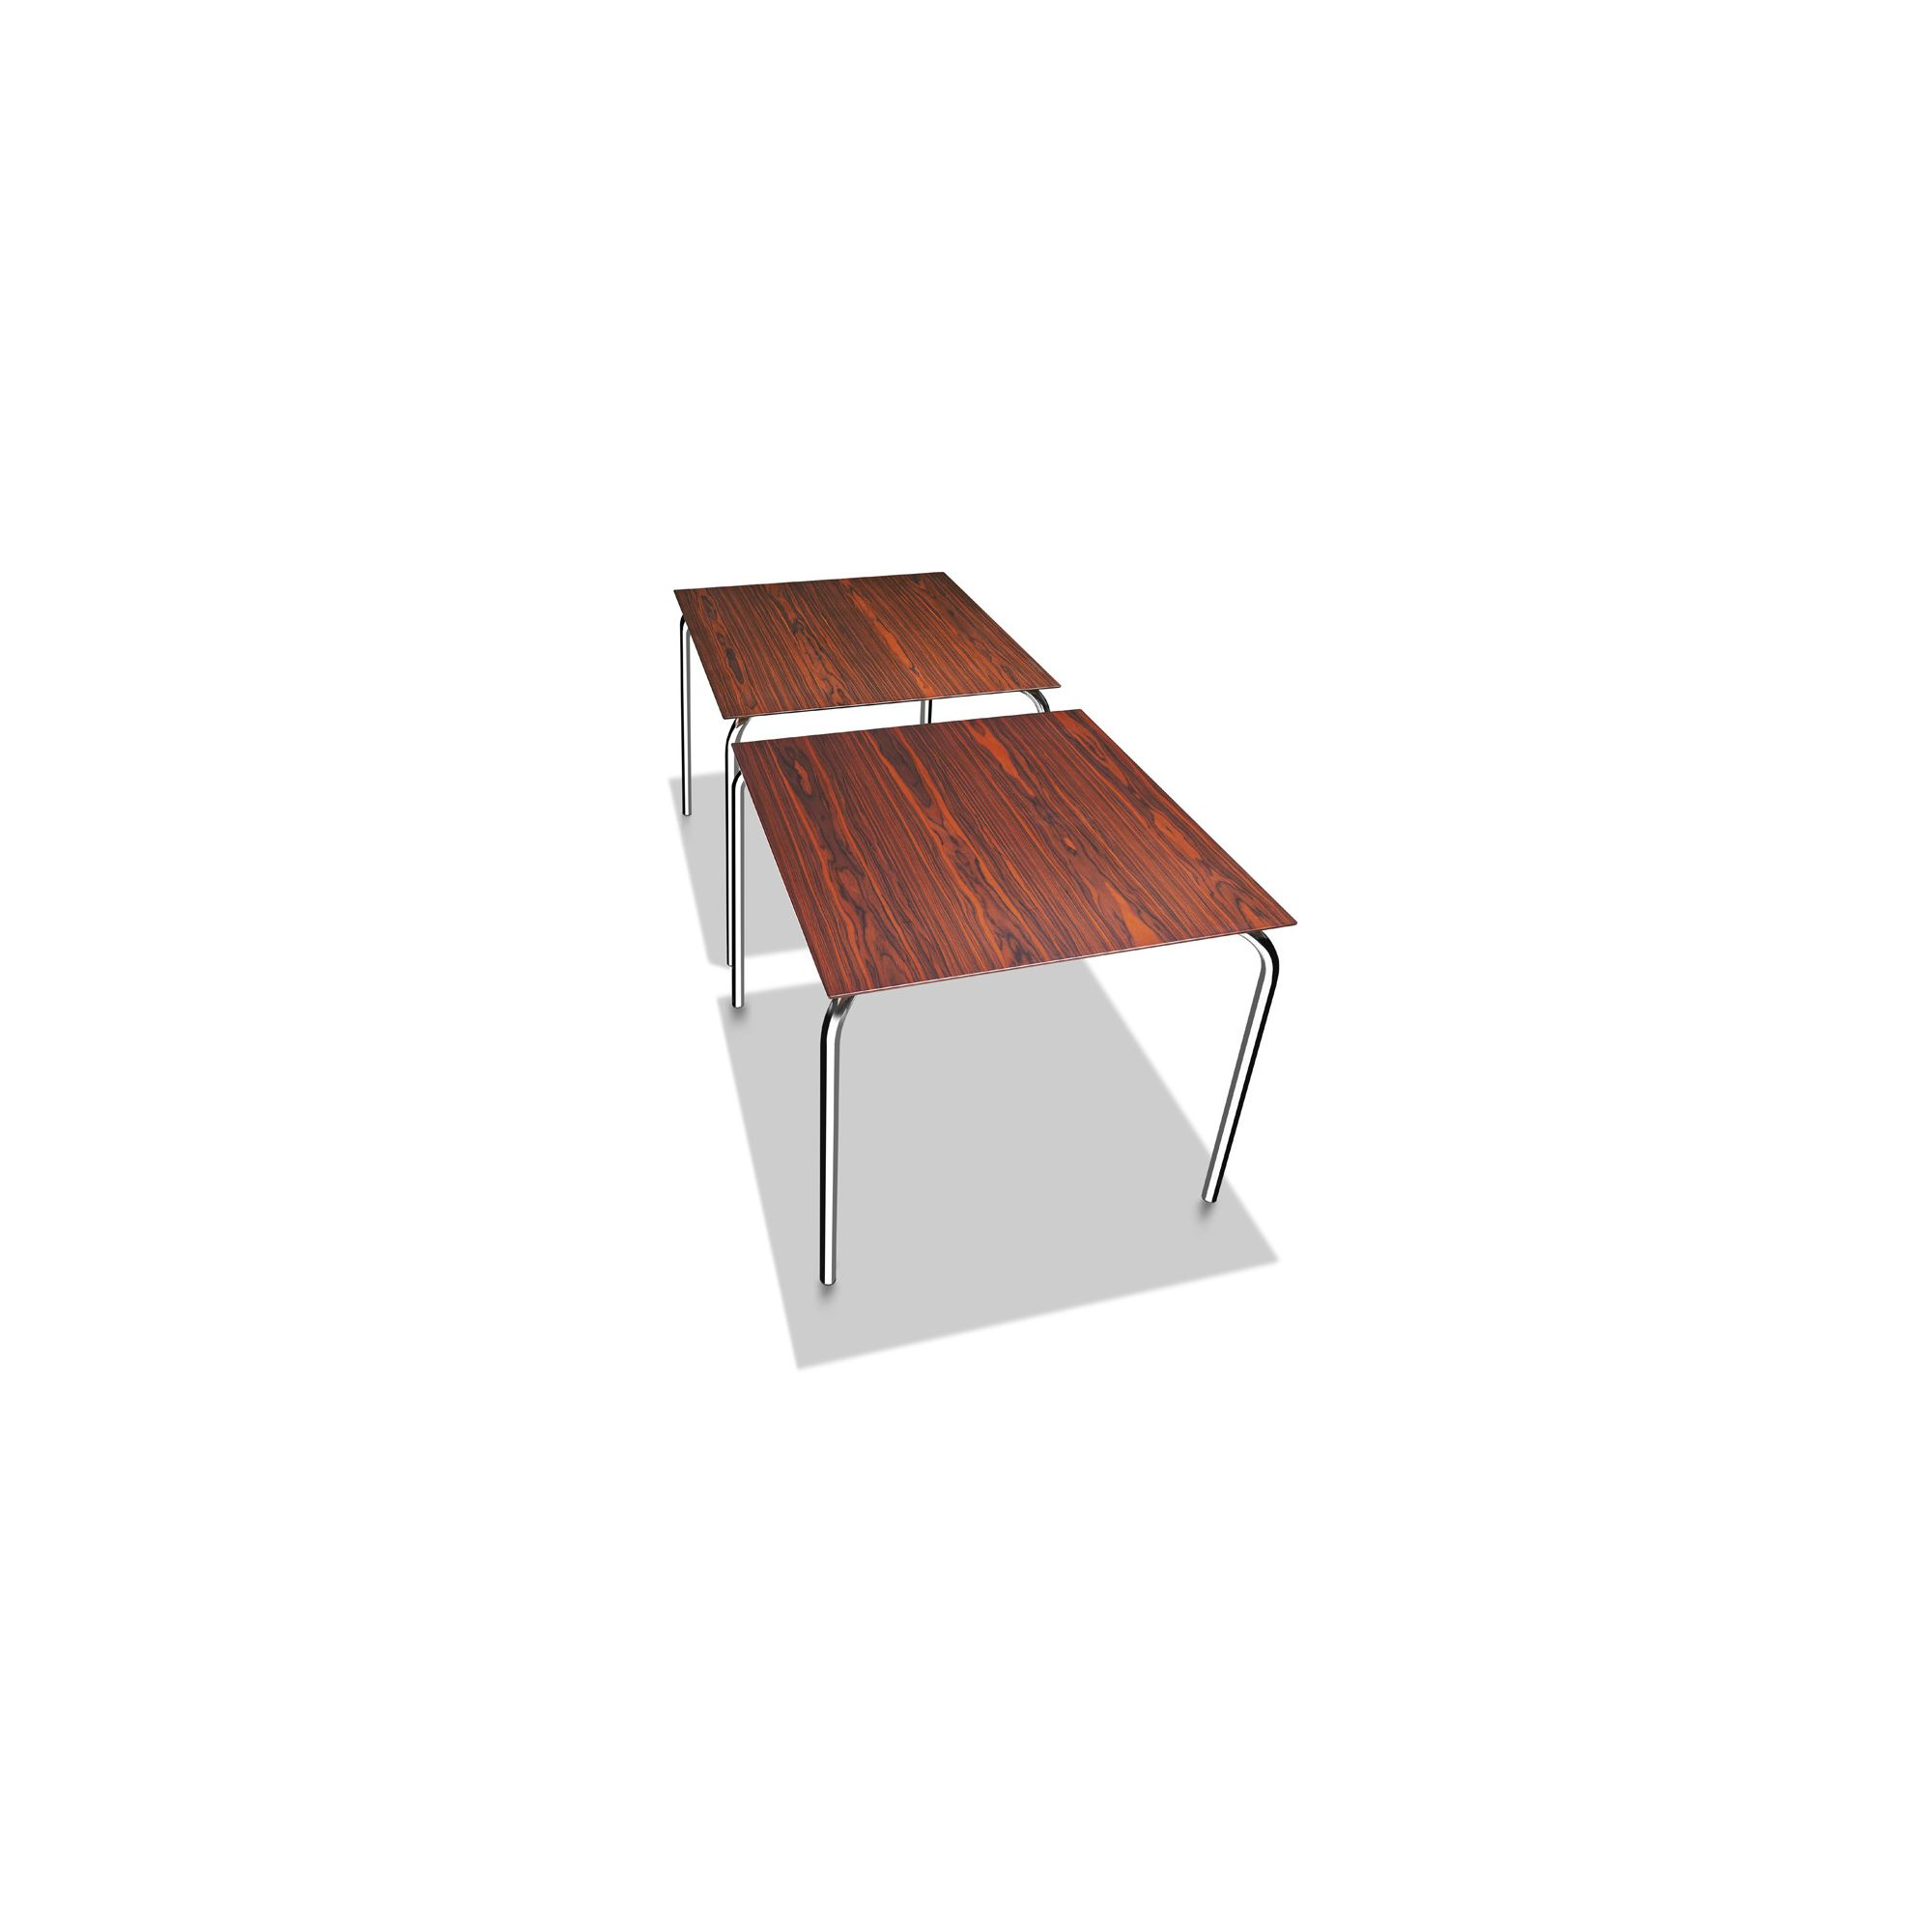 Parri Big Easy Low Table - Veneer - Stained Beige at Tesco Direct